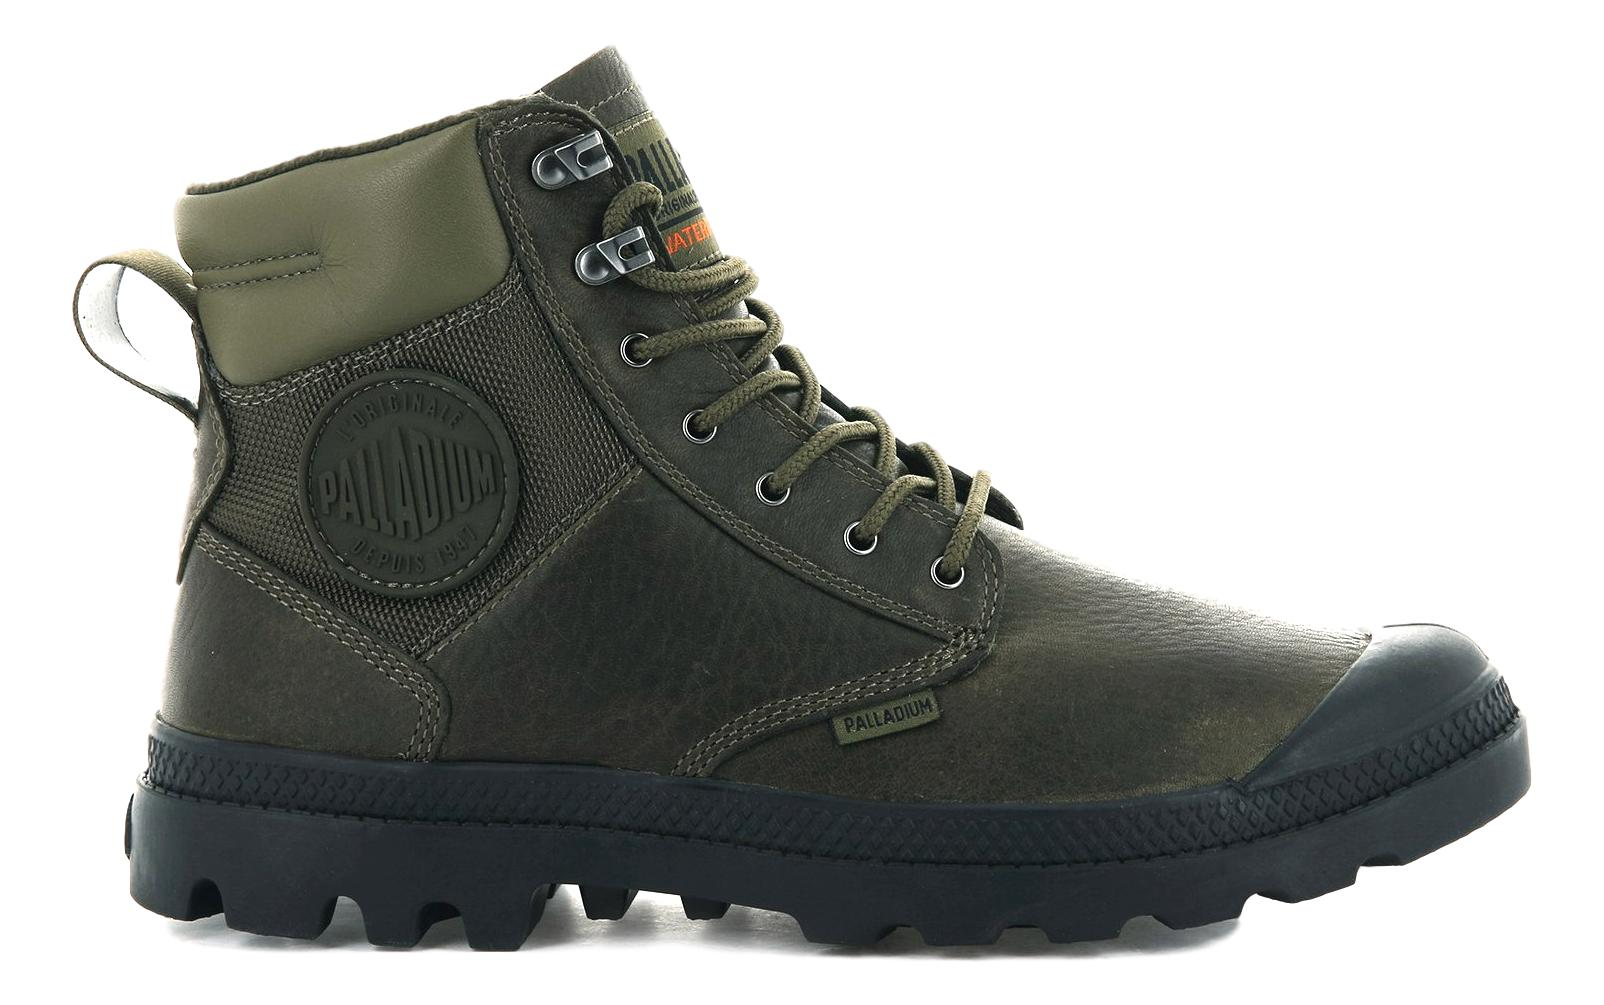 PALLADIUM SCARPONCINI PAMPA SHIELD WP LTH MILITARY OLIVE